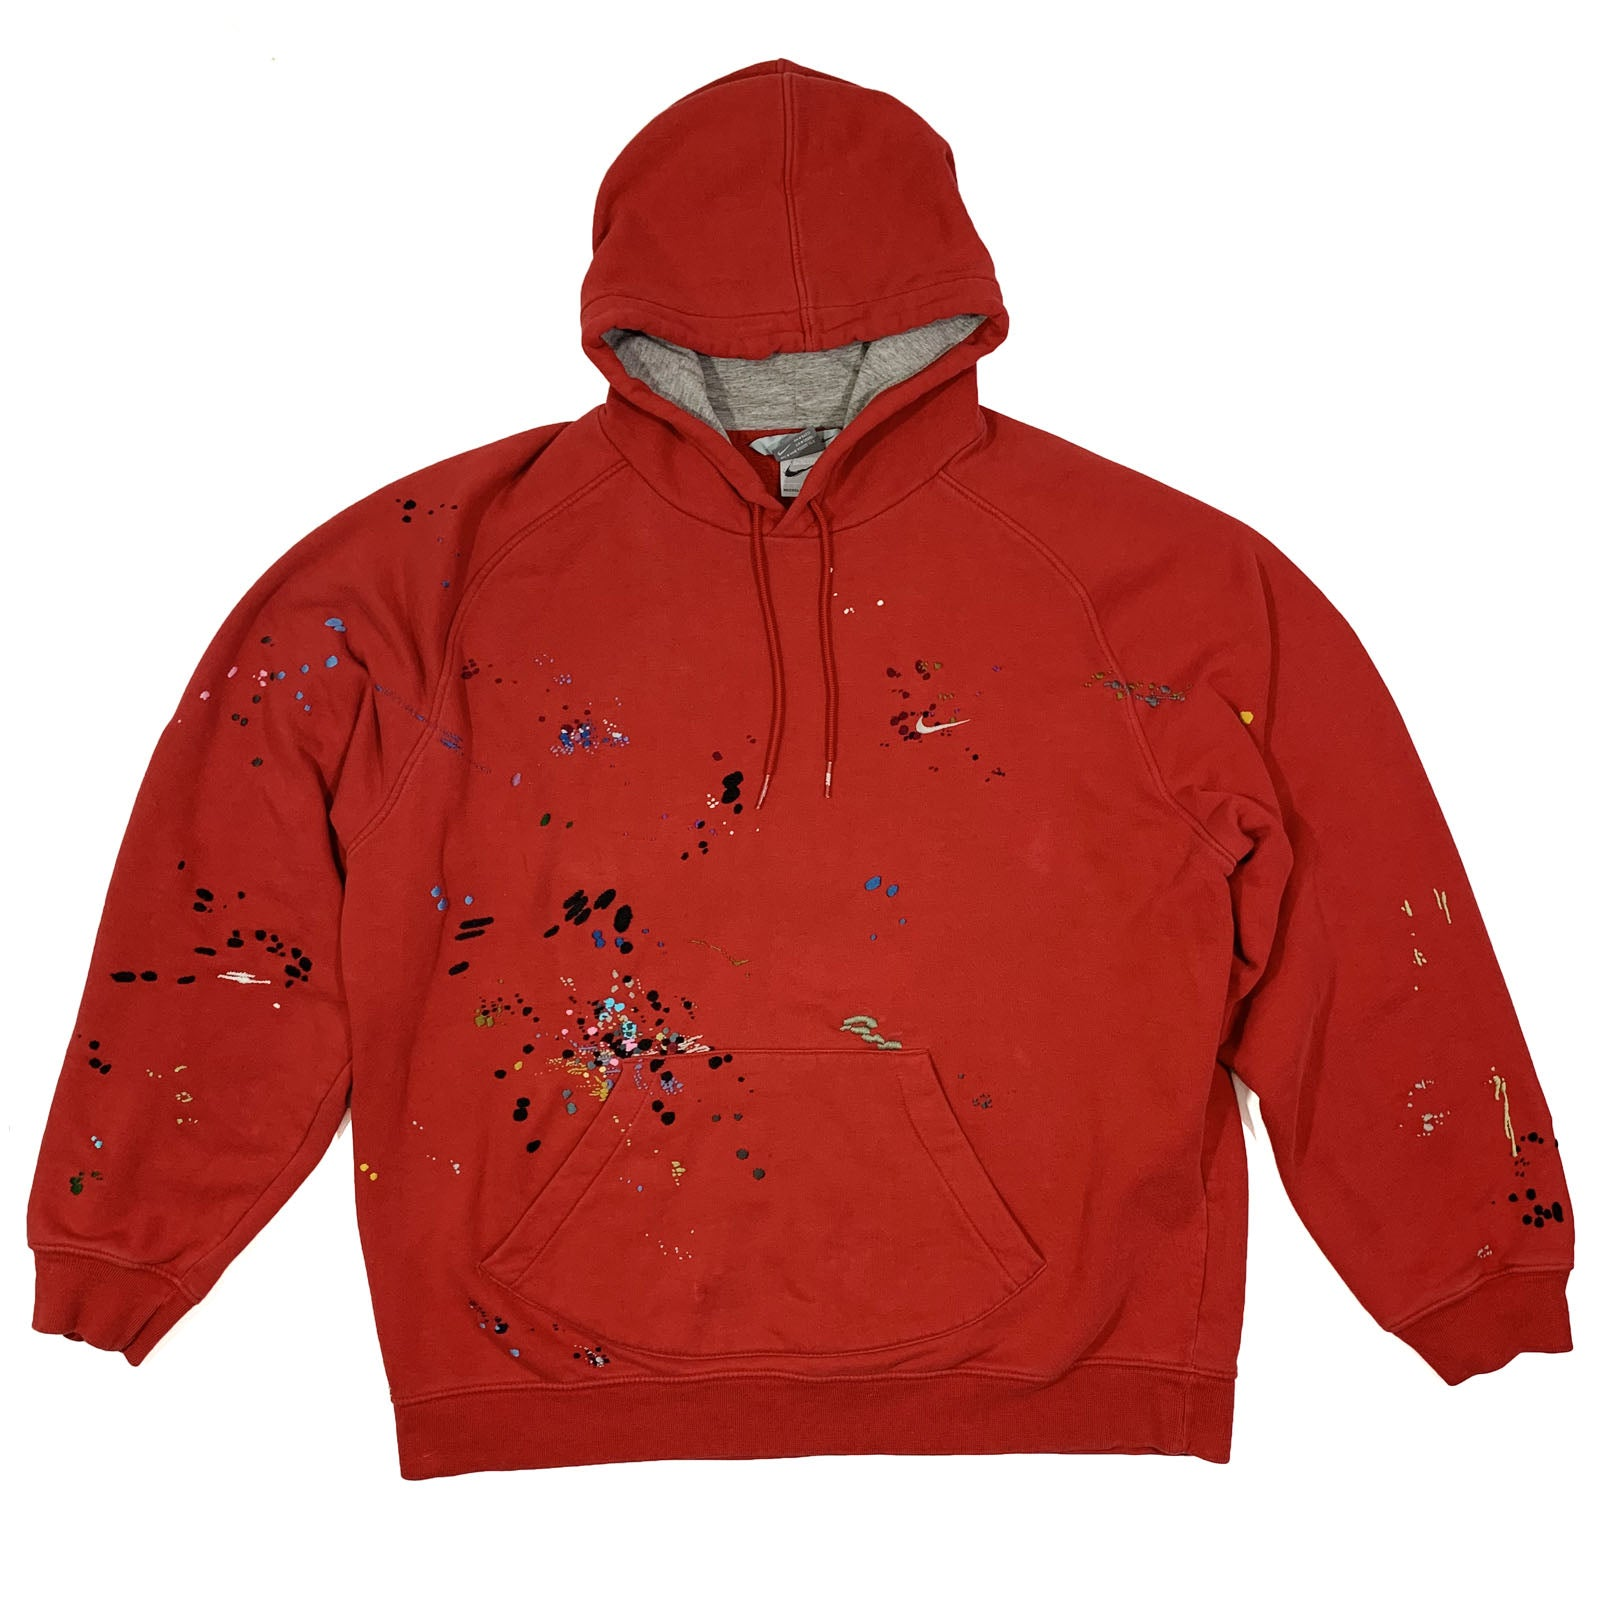 "BANDULU "" STRAWBERRY "" VINTAGE NIKE HOODIE XL"